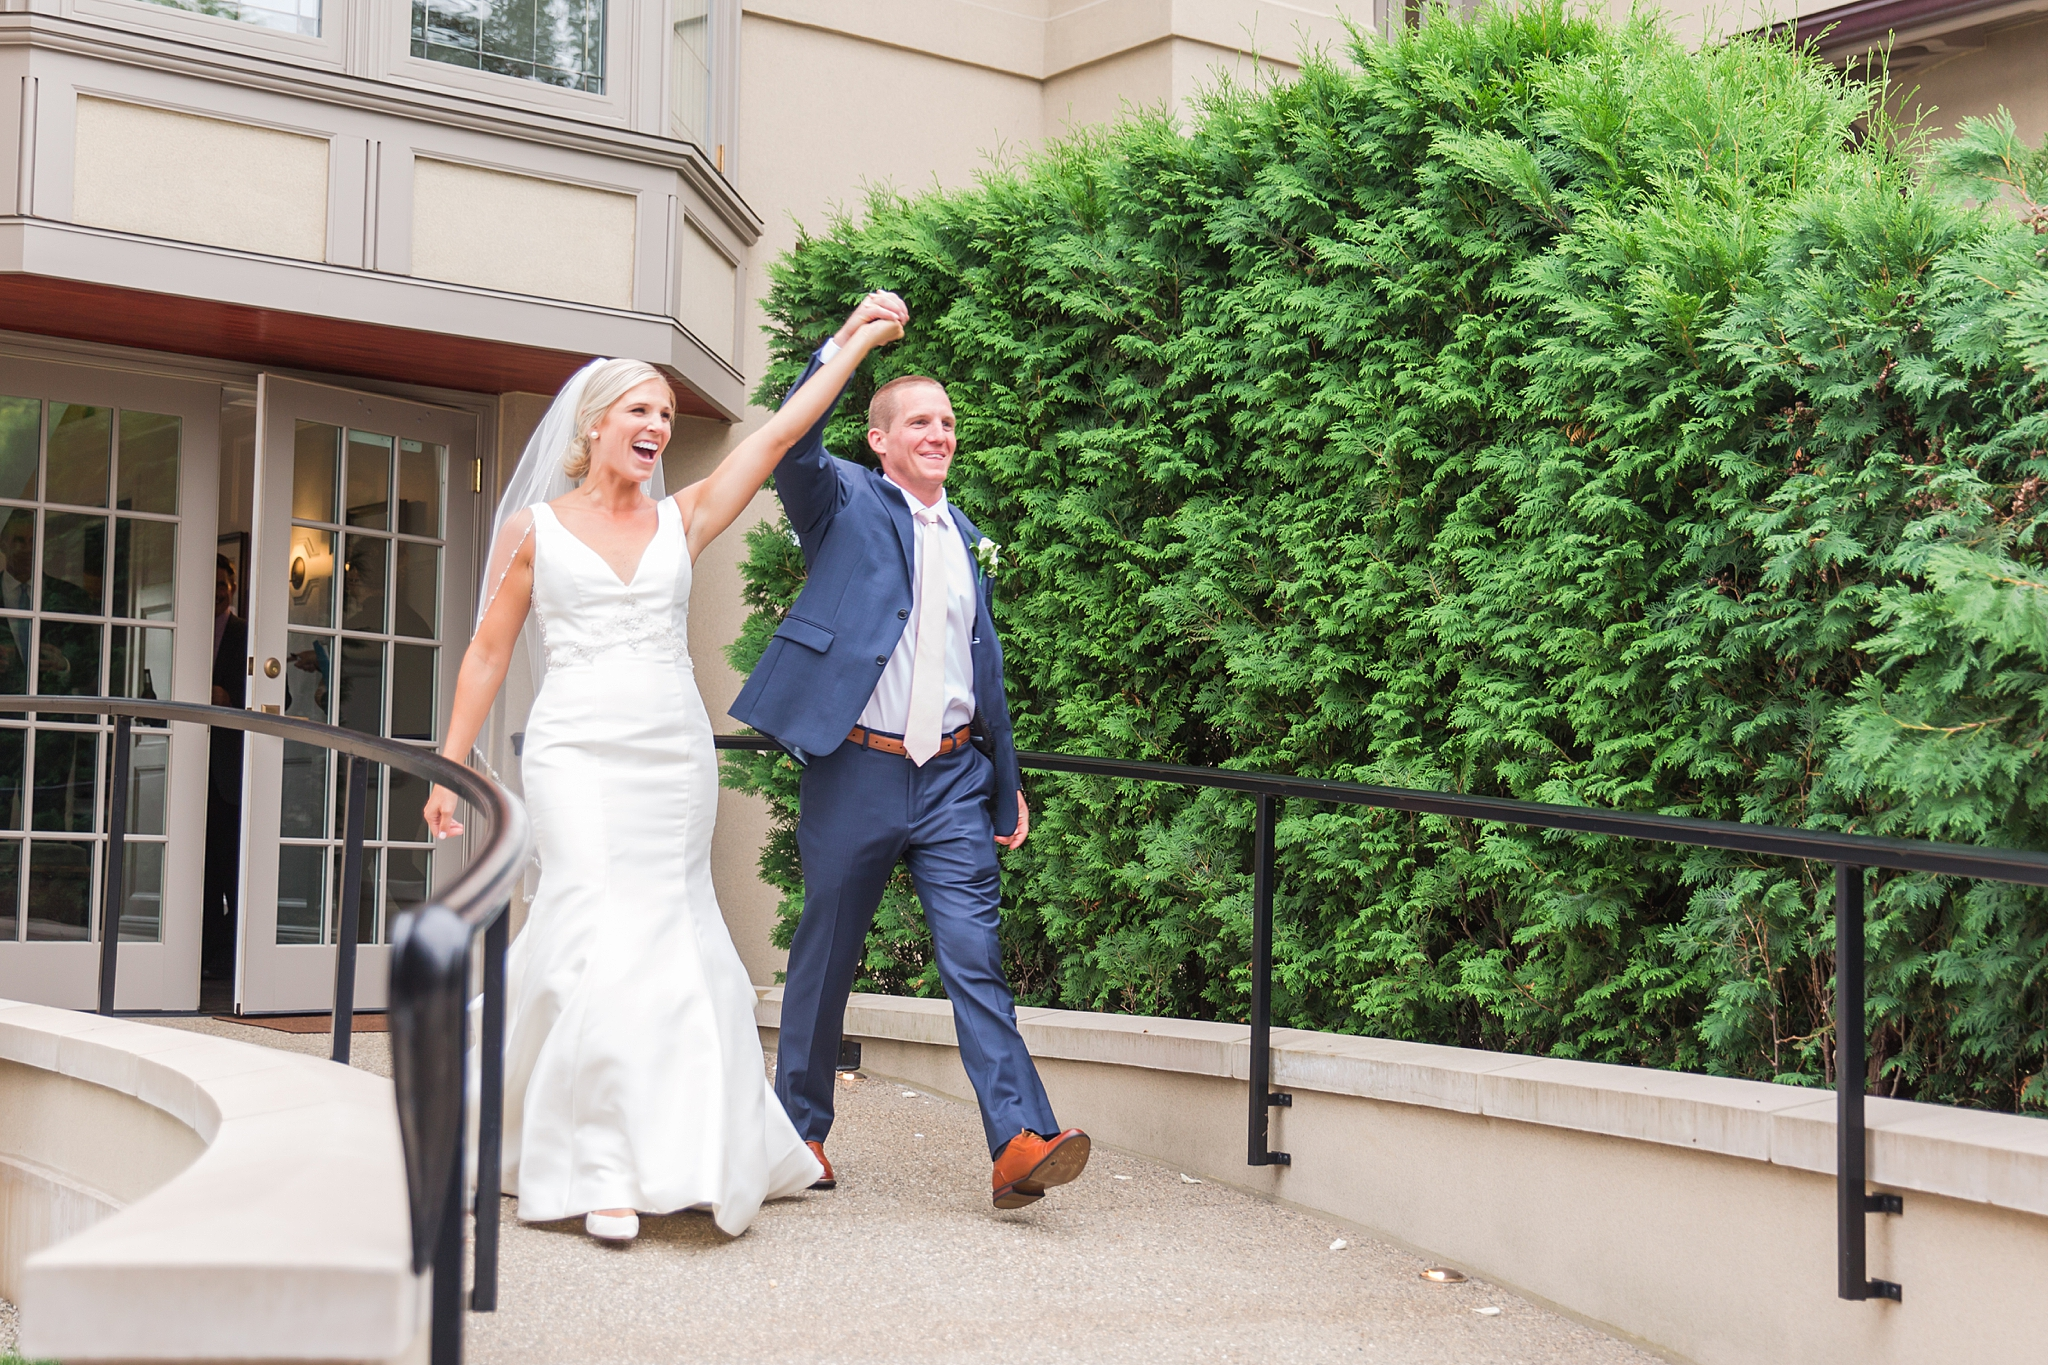 chapman-house-casually-chic-wedding-photography-in-rochester-michigan-by-courtney-carolyn-photography_0051.jpg